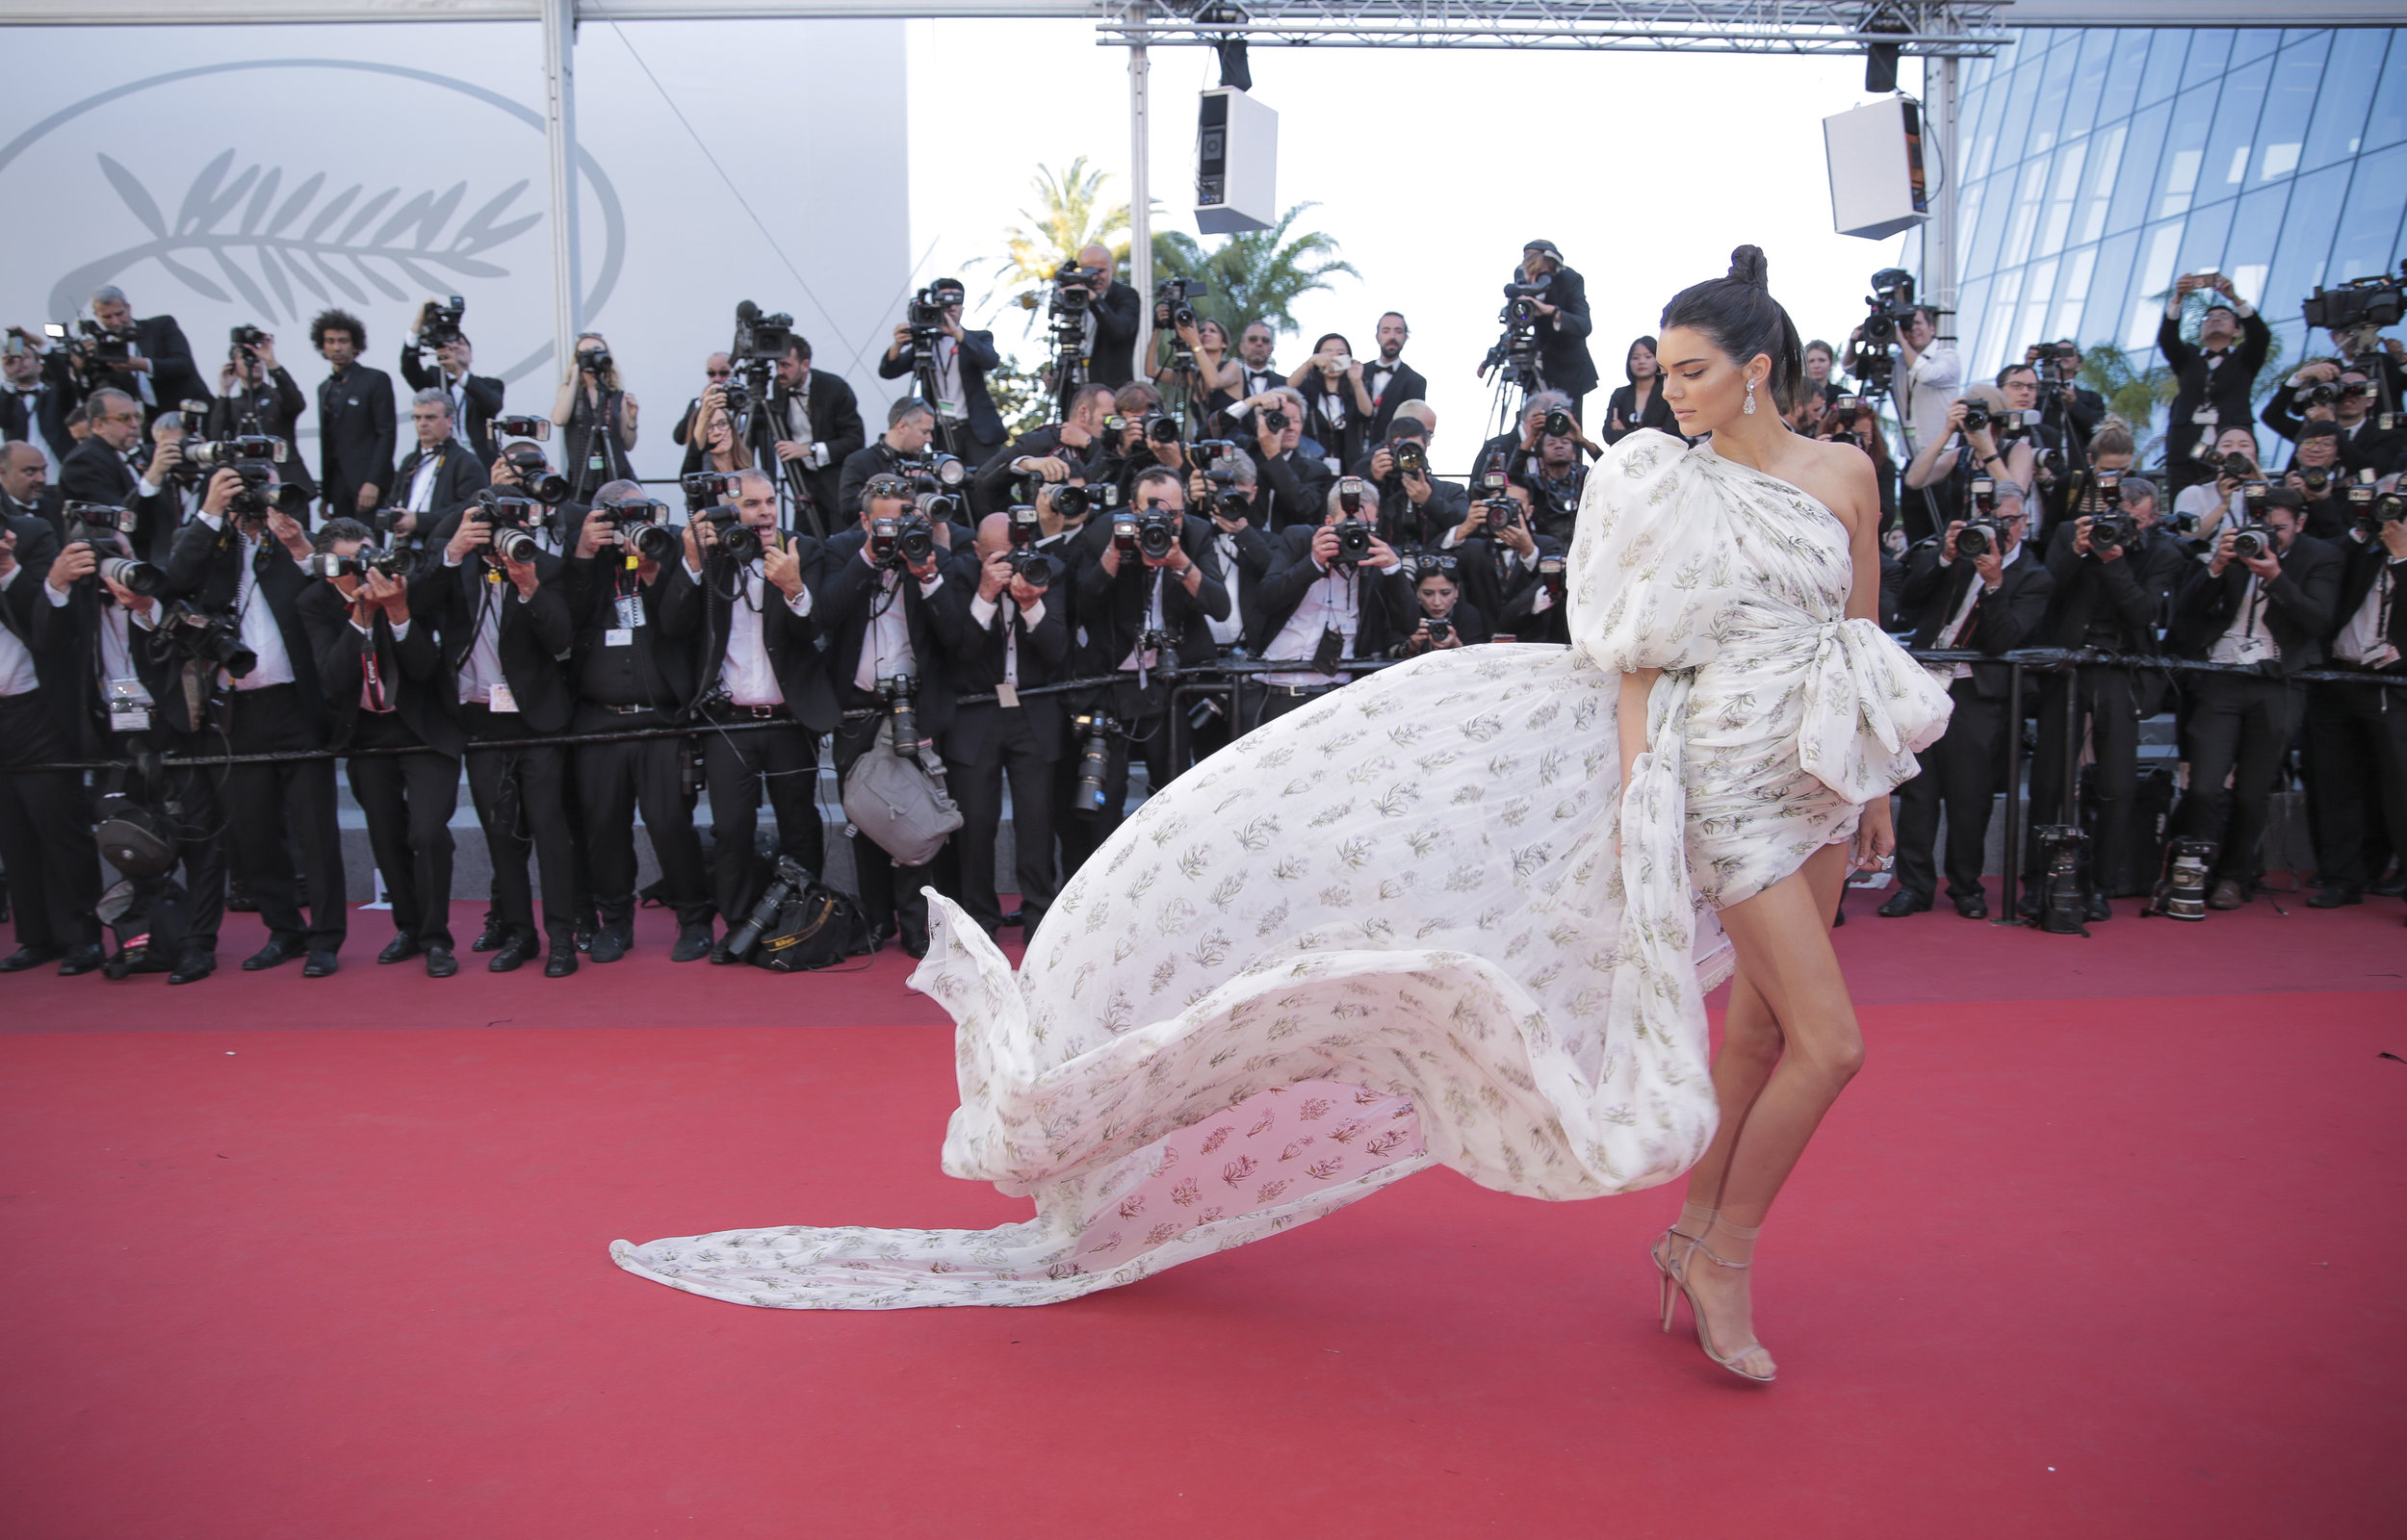 Kendall Jenner on the red carpet at the Cannes Film Festival.Photo by Graham Whitby-Boot  20 May 2017